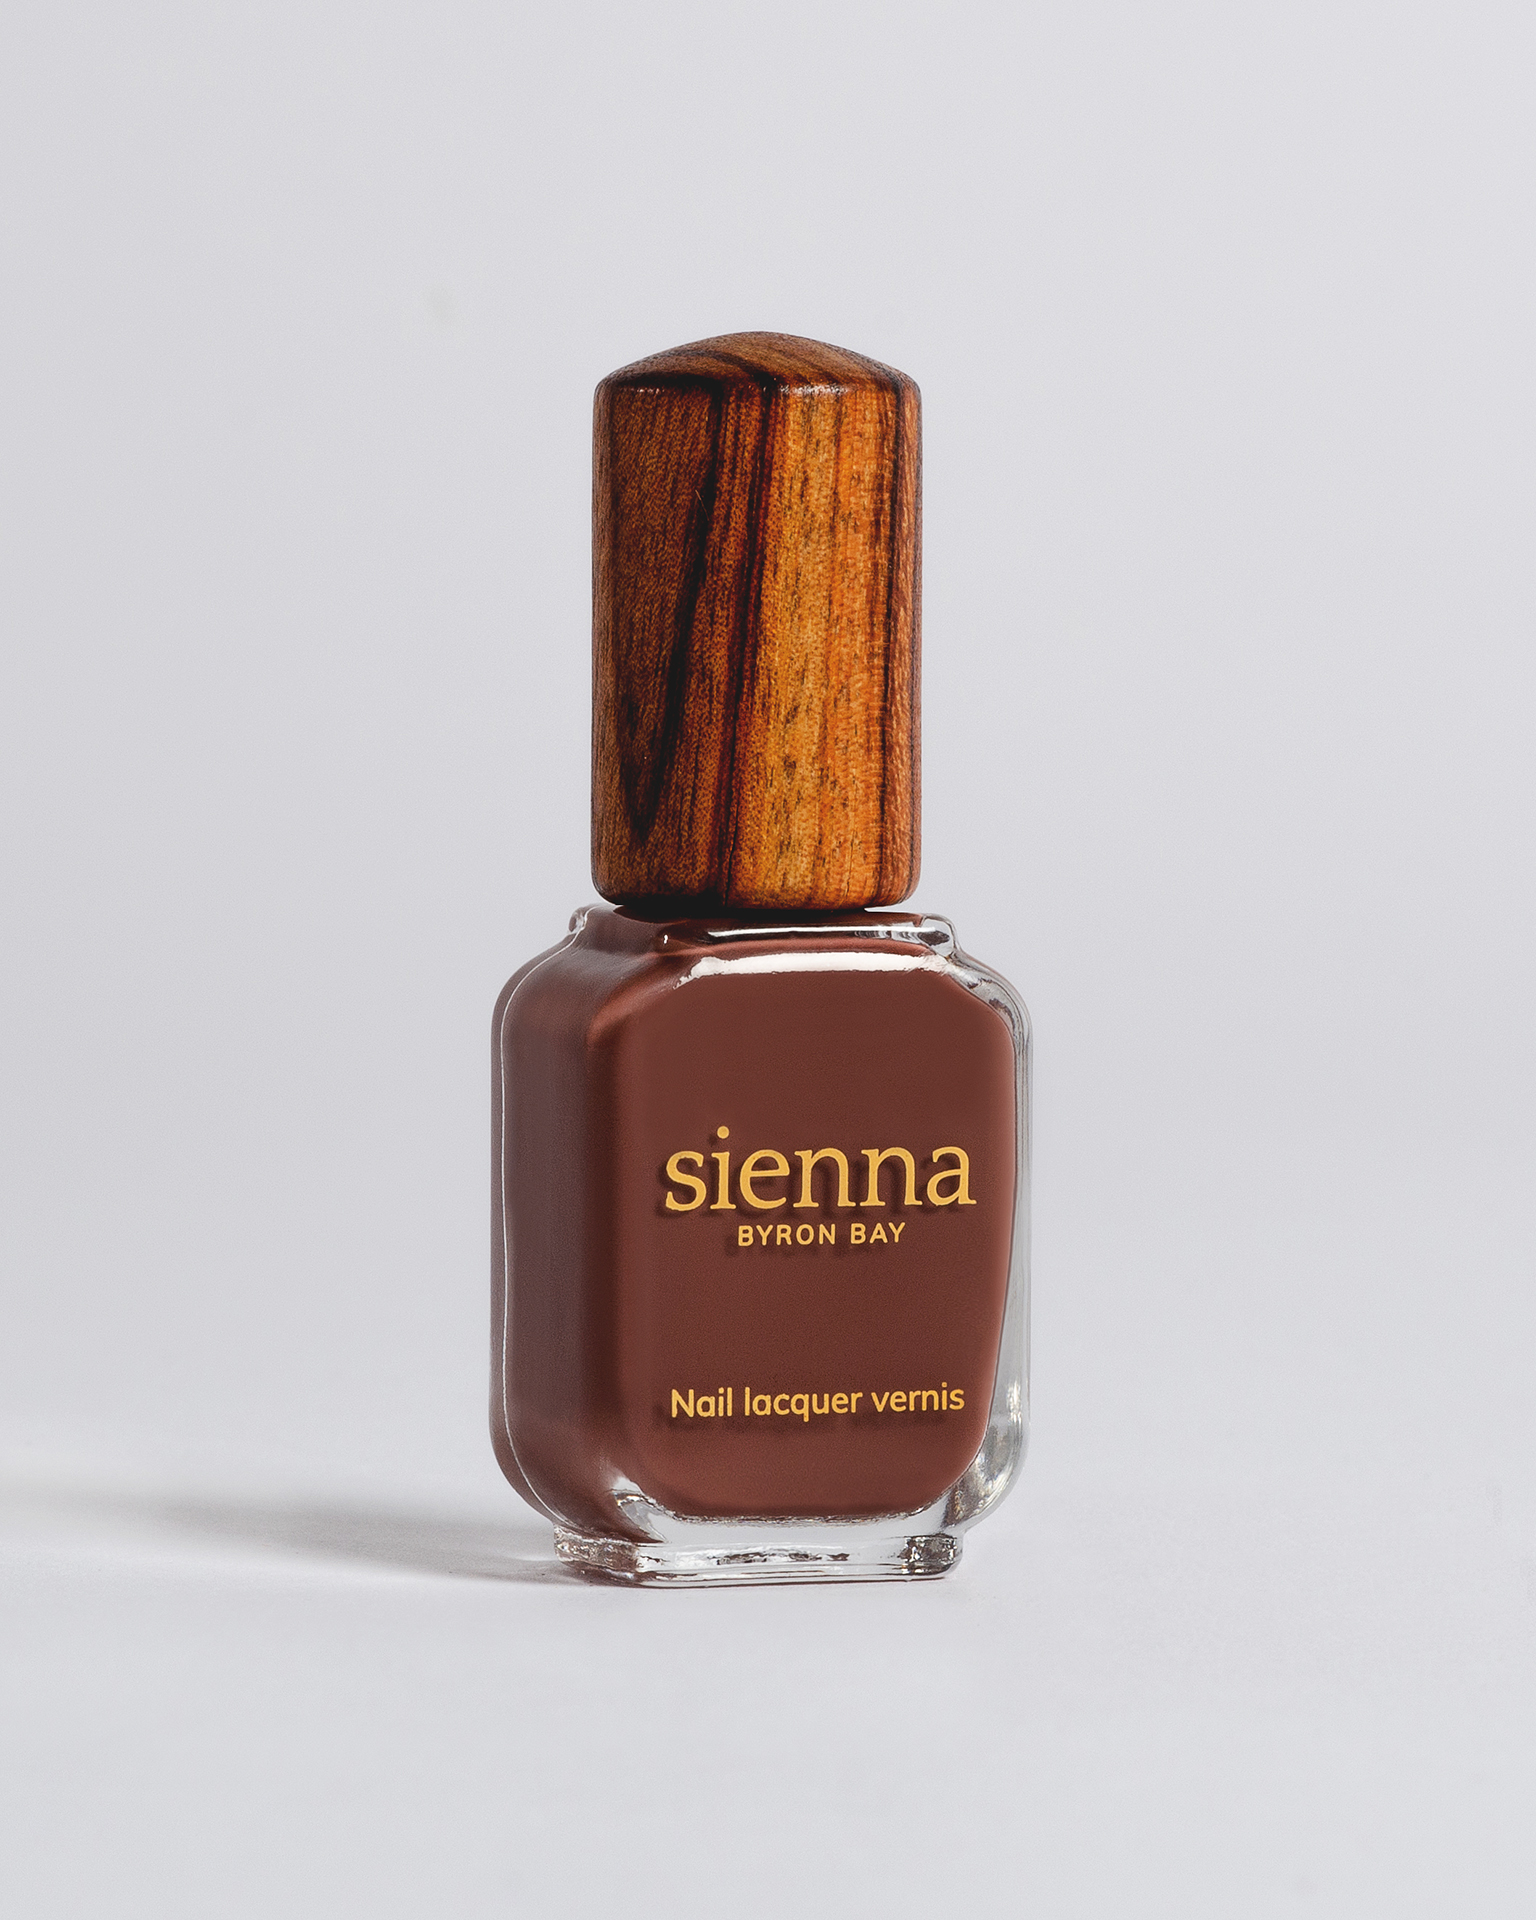 brown nail polish bottle with timber cap by sienna